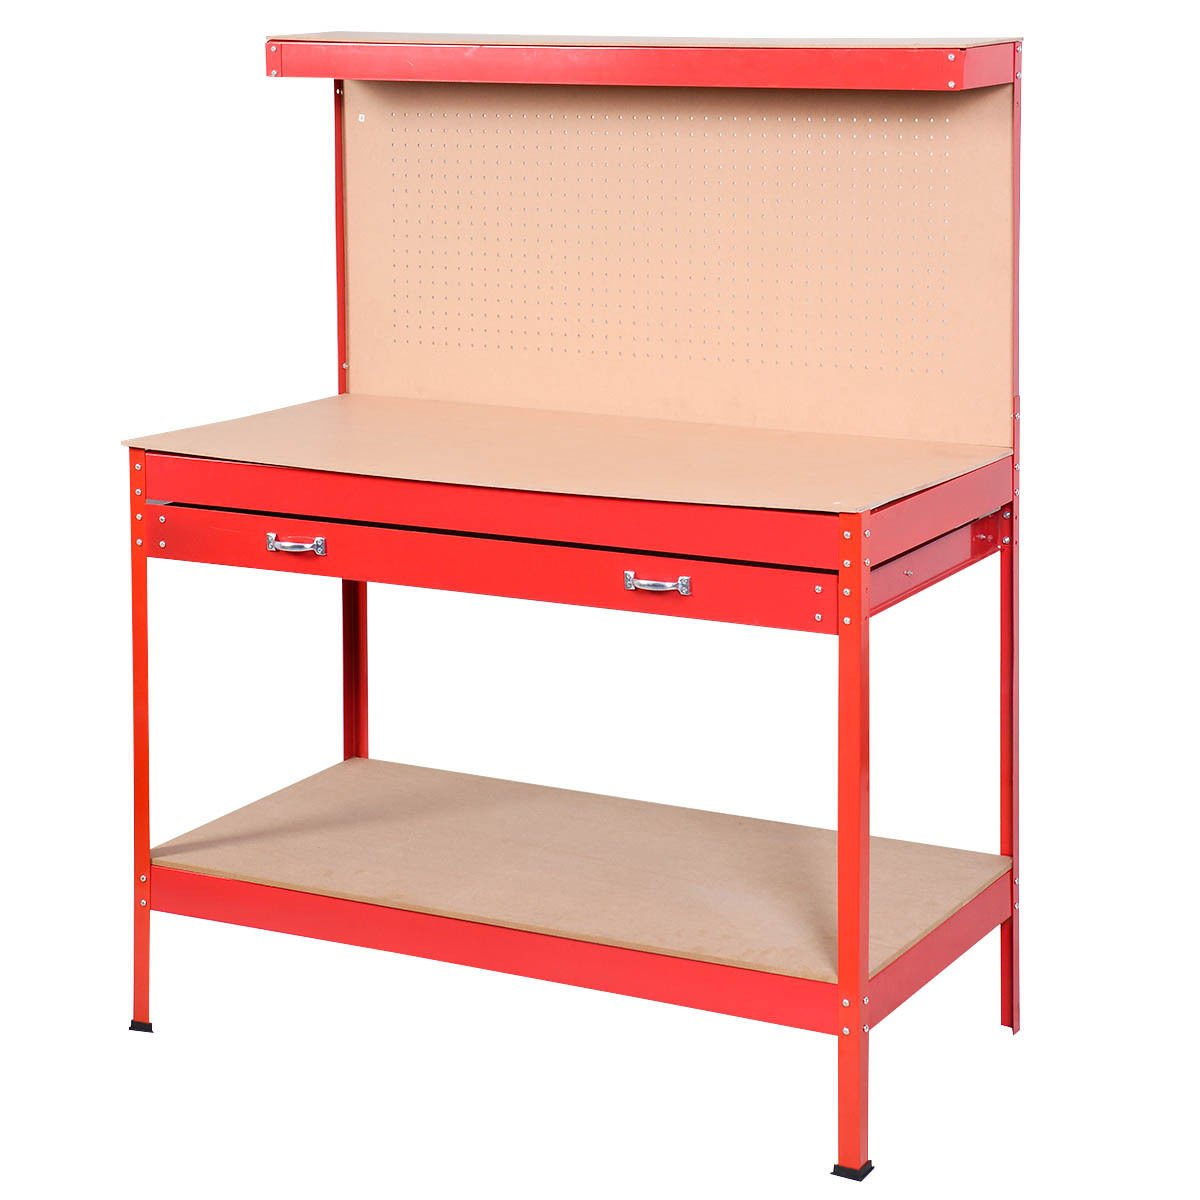 Red Work Bench Tool Storage Steel Tool Workshop Table by Tamsun by Tamsun